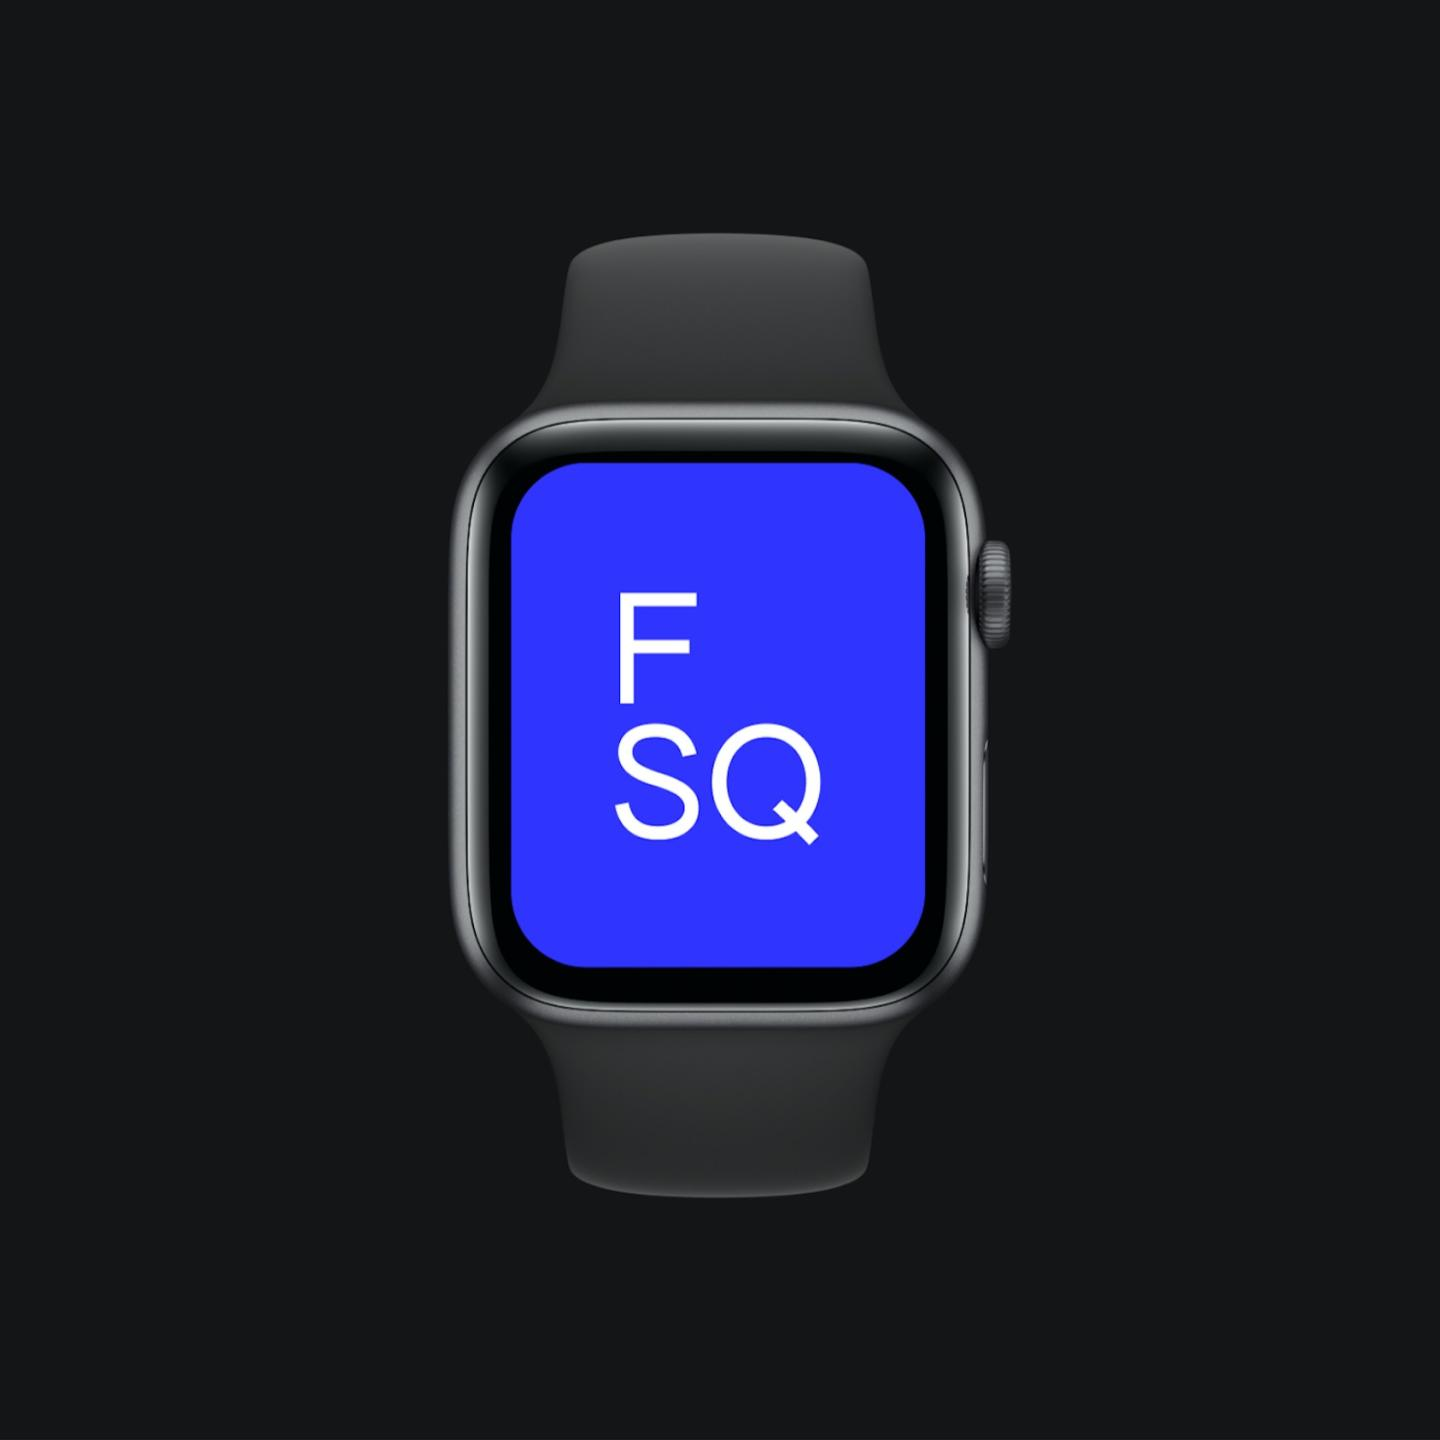 an image of a watch with a blue screen on a black background